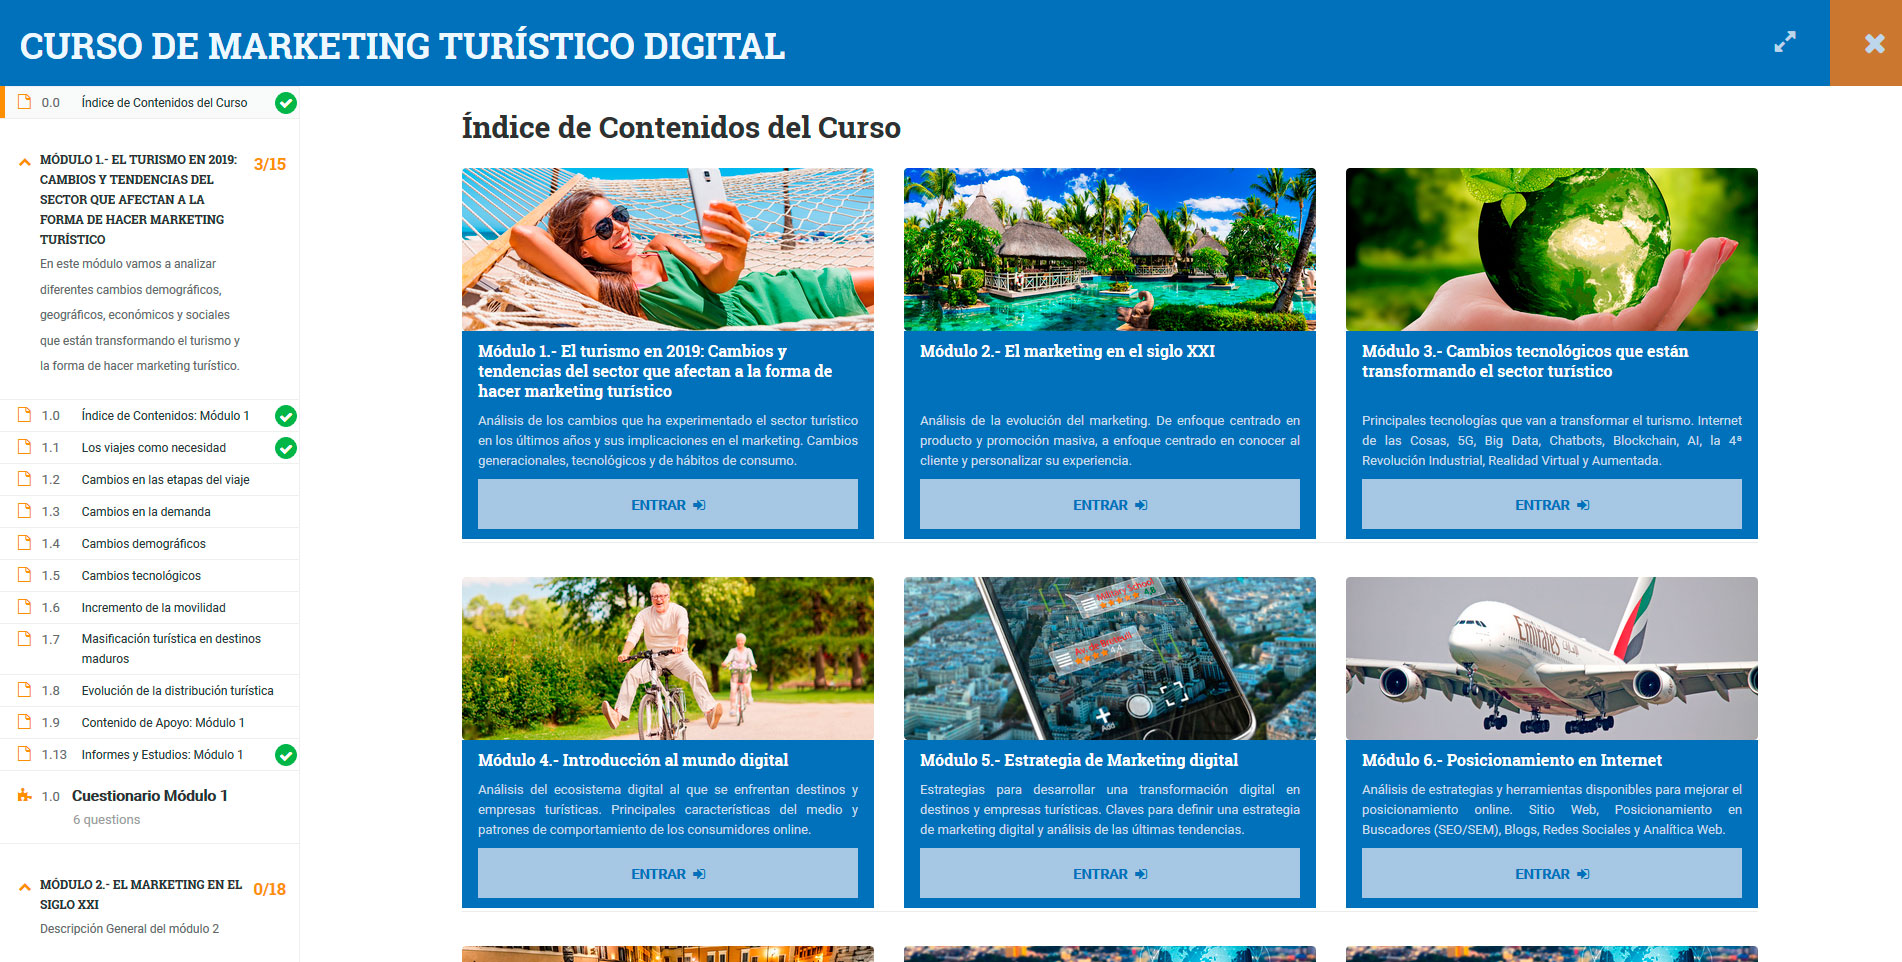 marketing_turistico_digital_captura2